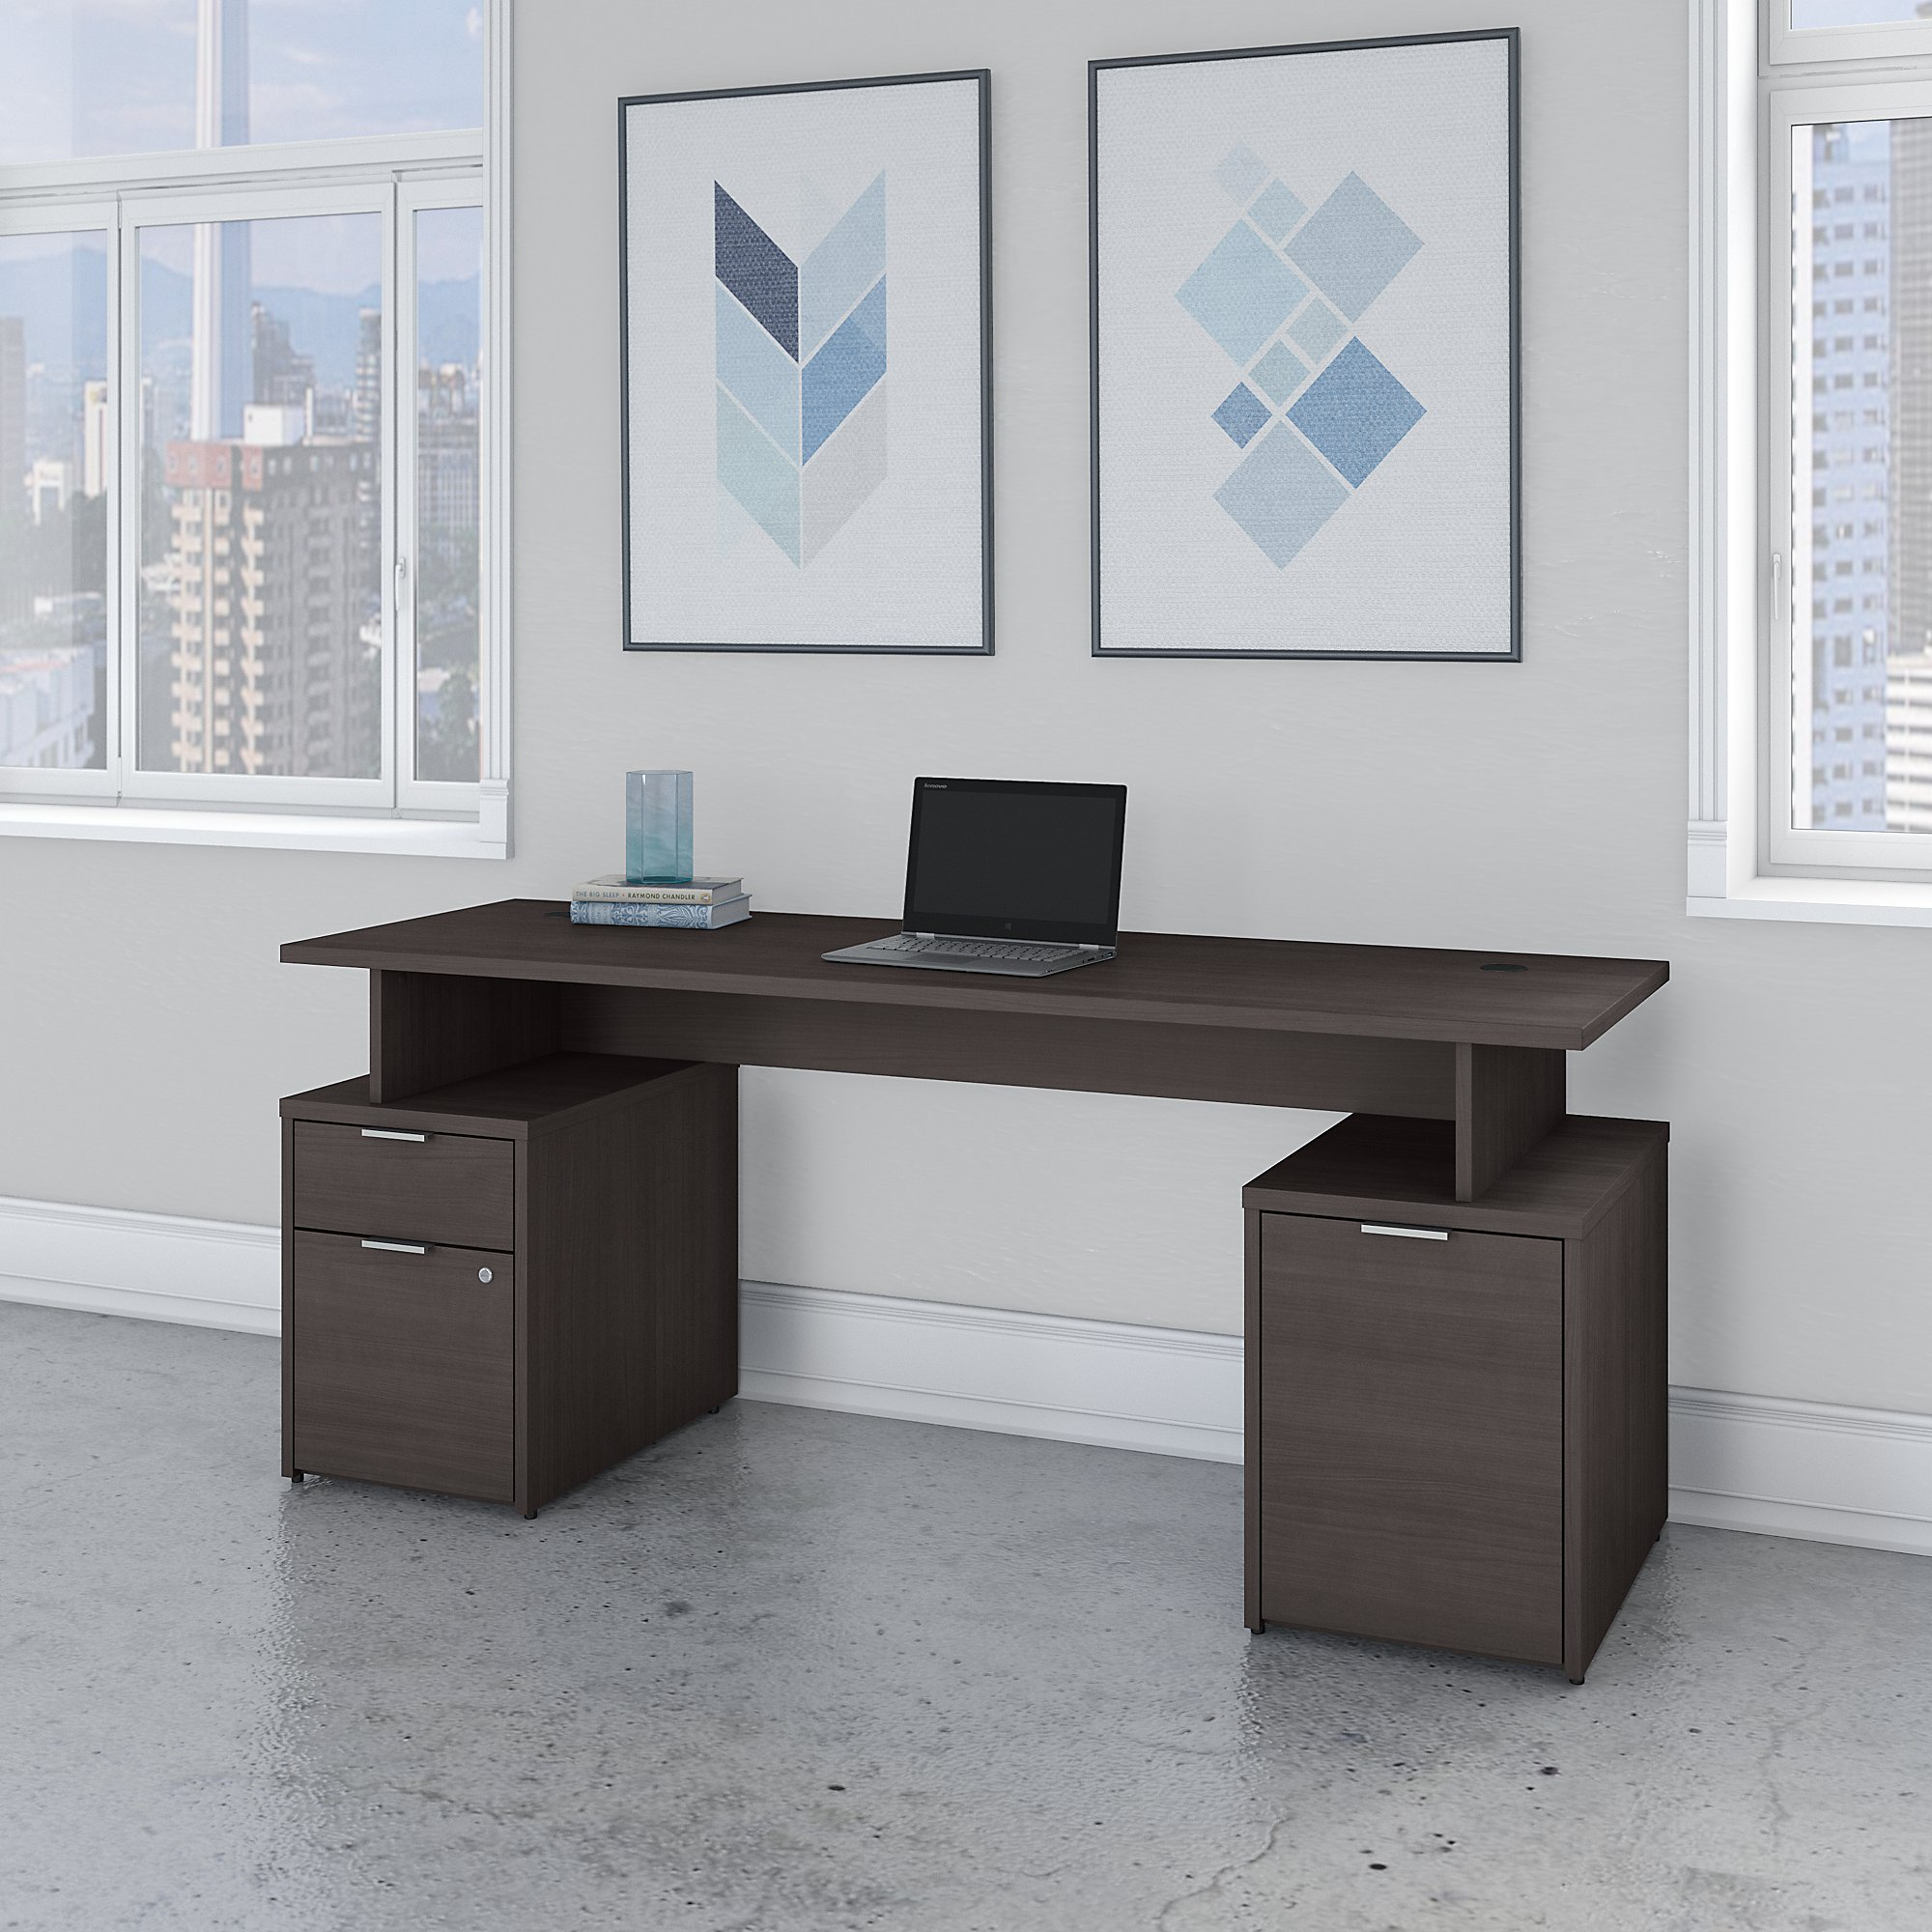 Bush Business Furniture Jamestown 72W Desk with Drawers and Small Storage Cabinet